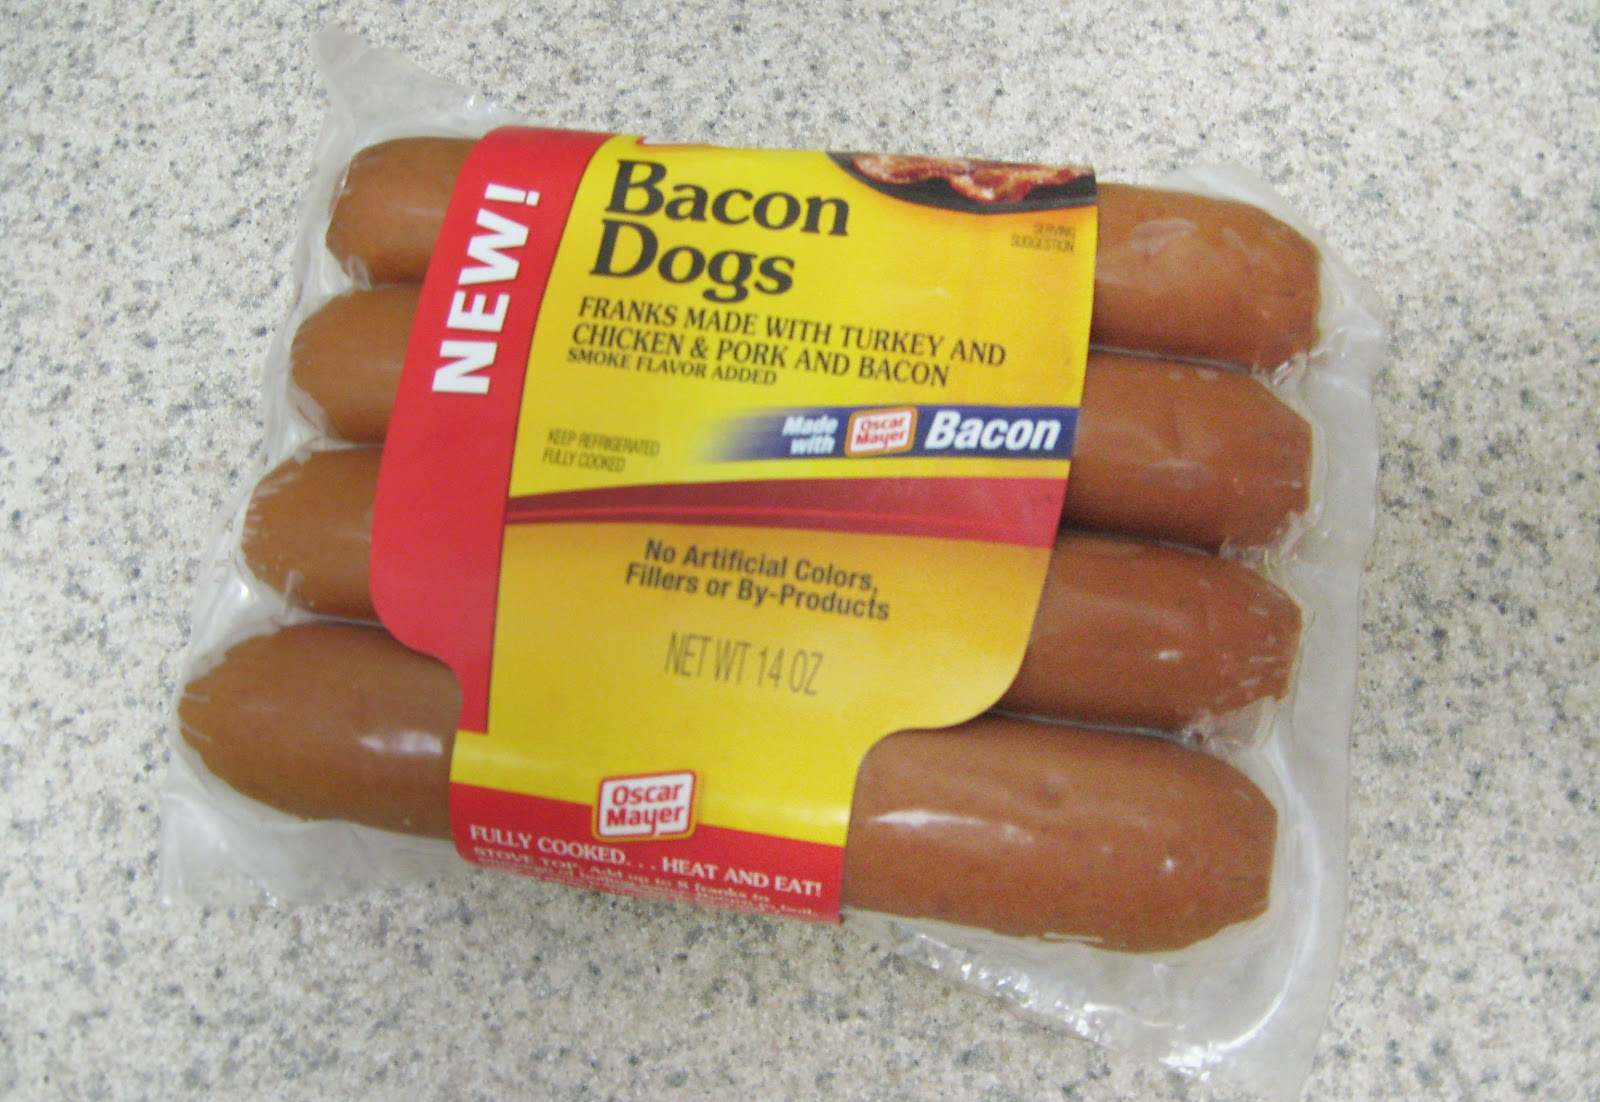 Oscar Mayer Beef Franks Free At Winn Dixie Until 7 25 together with B3NjYXIgbWF5ZXIgaG90IGRvZ3M likewise Single Hot Dog Weiner likewise New 501 Oscar Mayer Hot Dogs Printable Coupon moreover Oscar Mayer Wienermobile. on oscar mayer select dogs